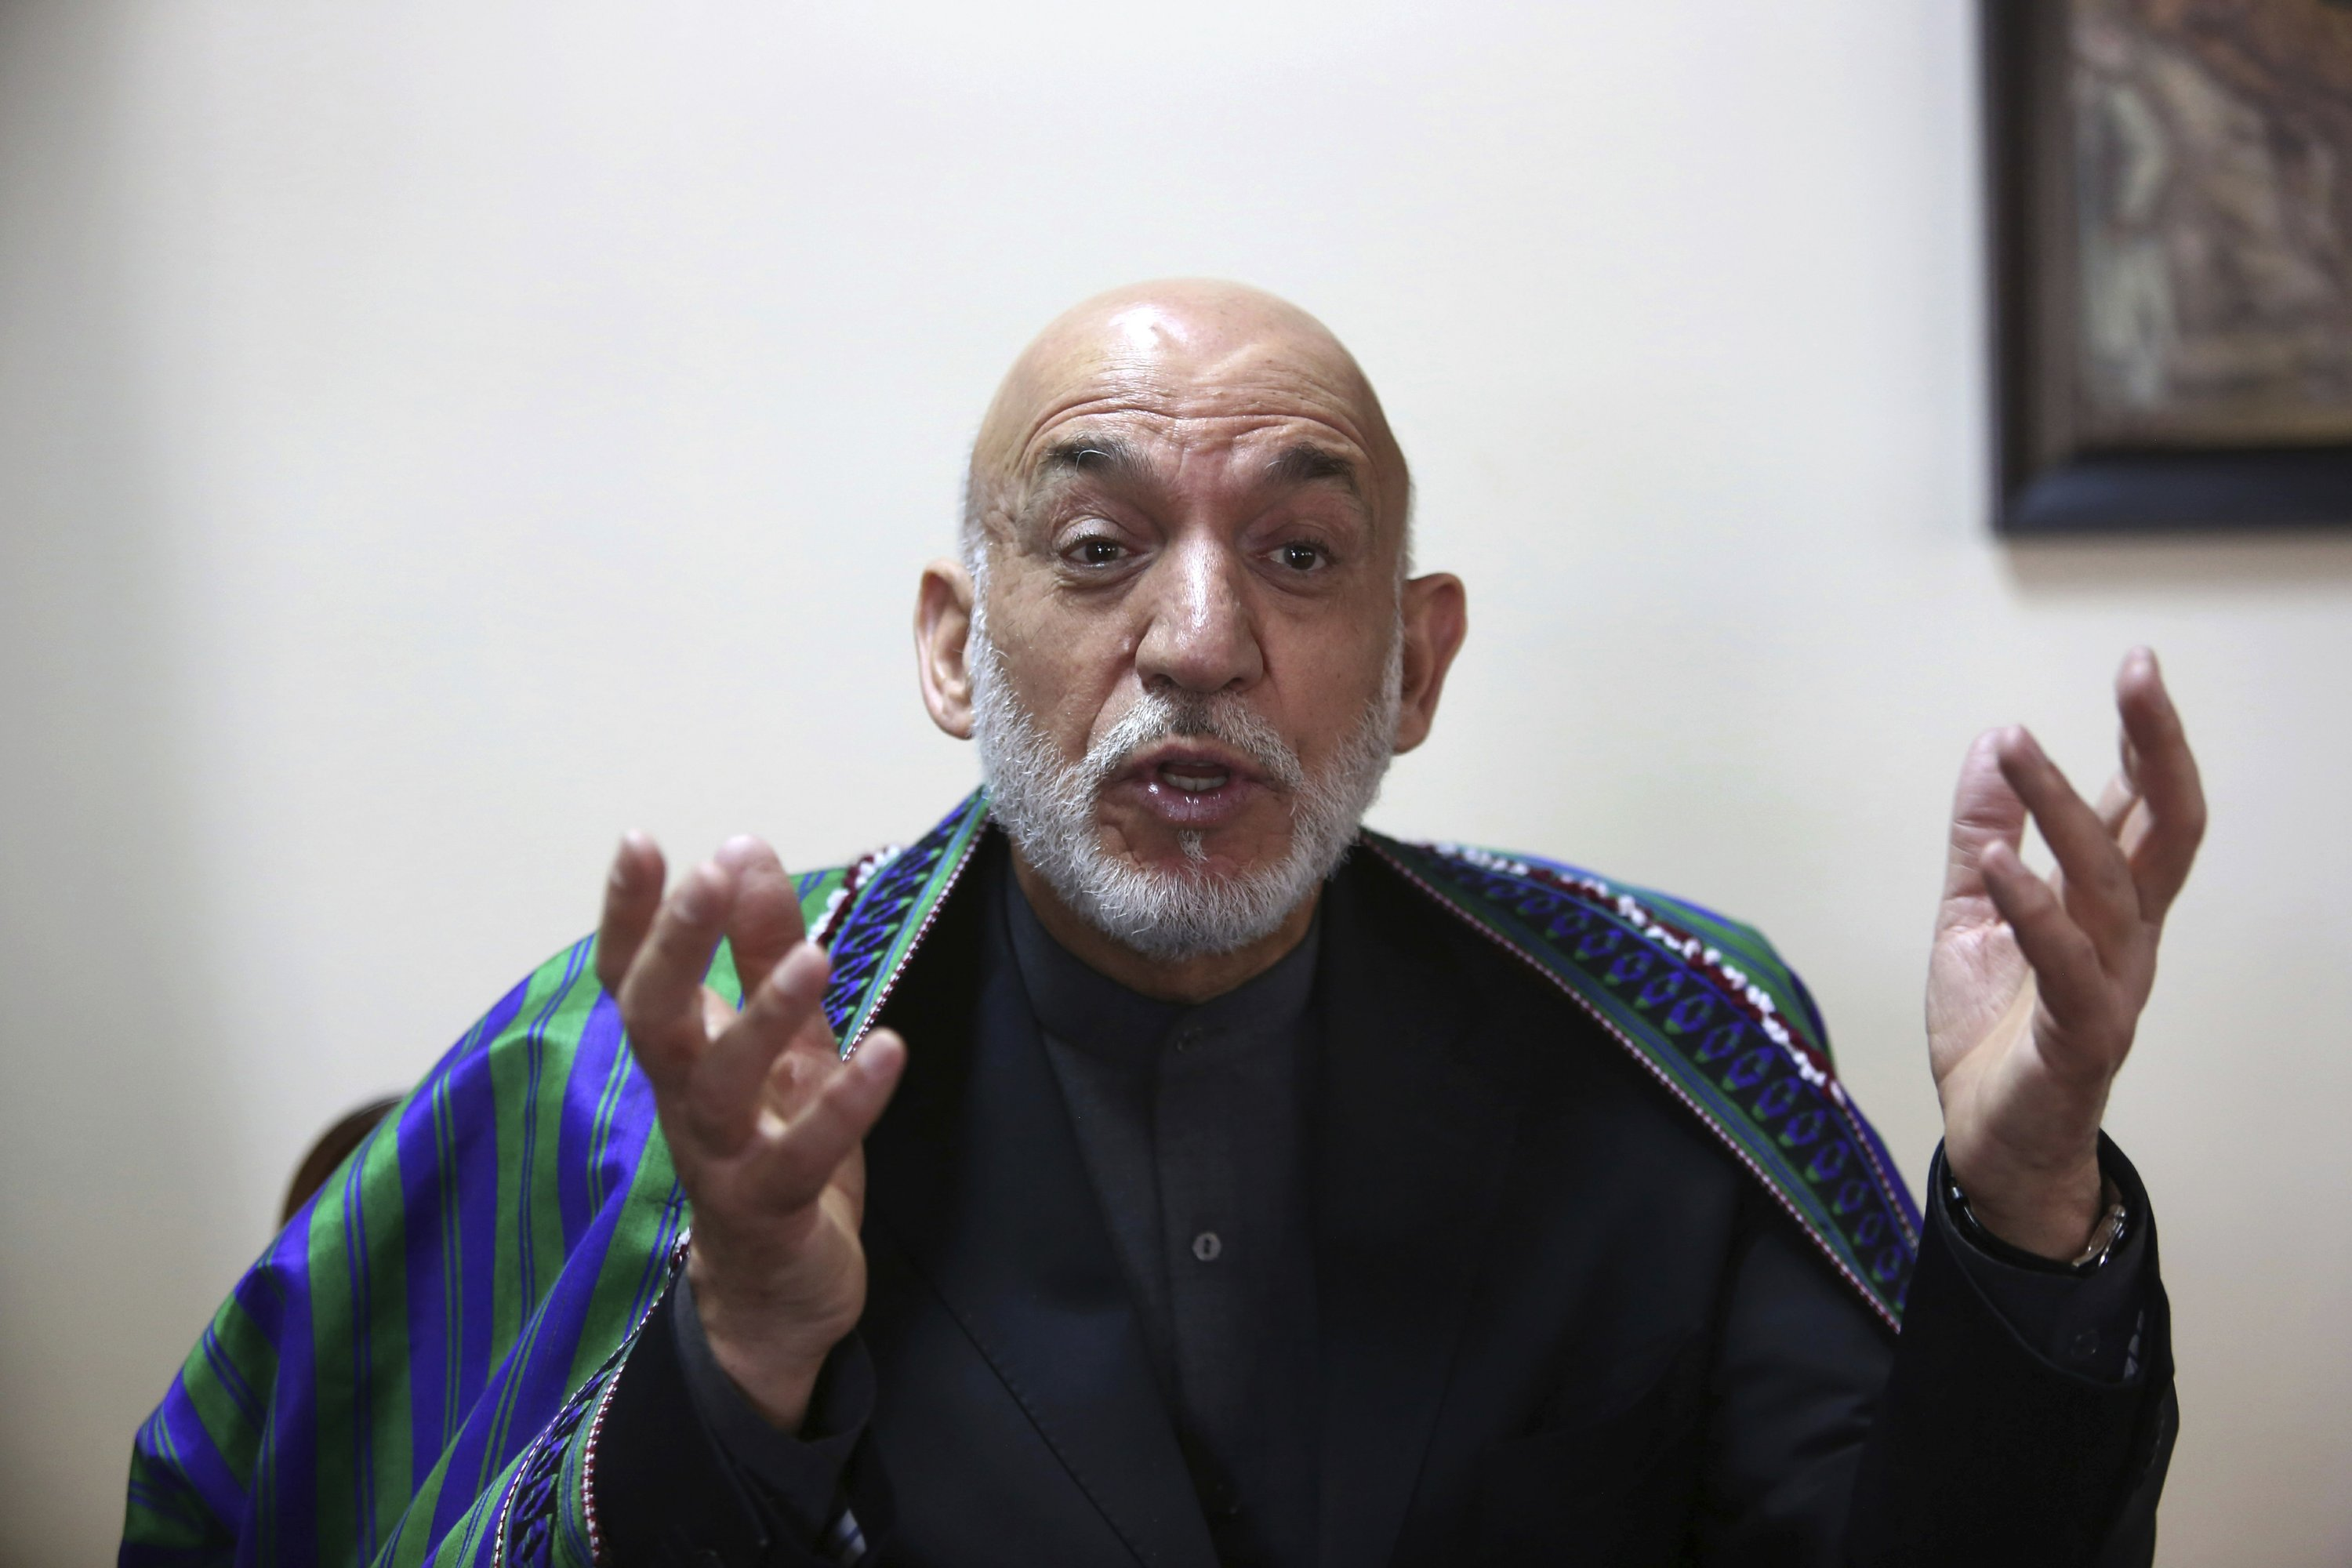 Former Afghan President: Massive US bomb was an 'atrocity'